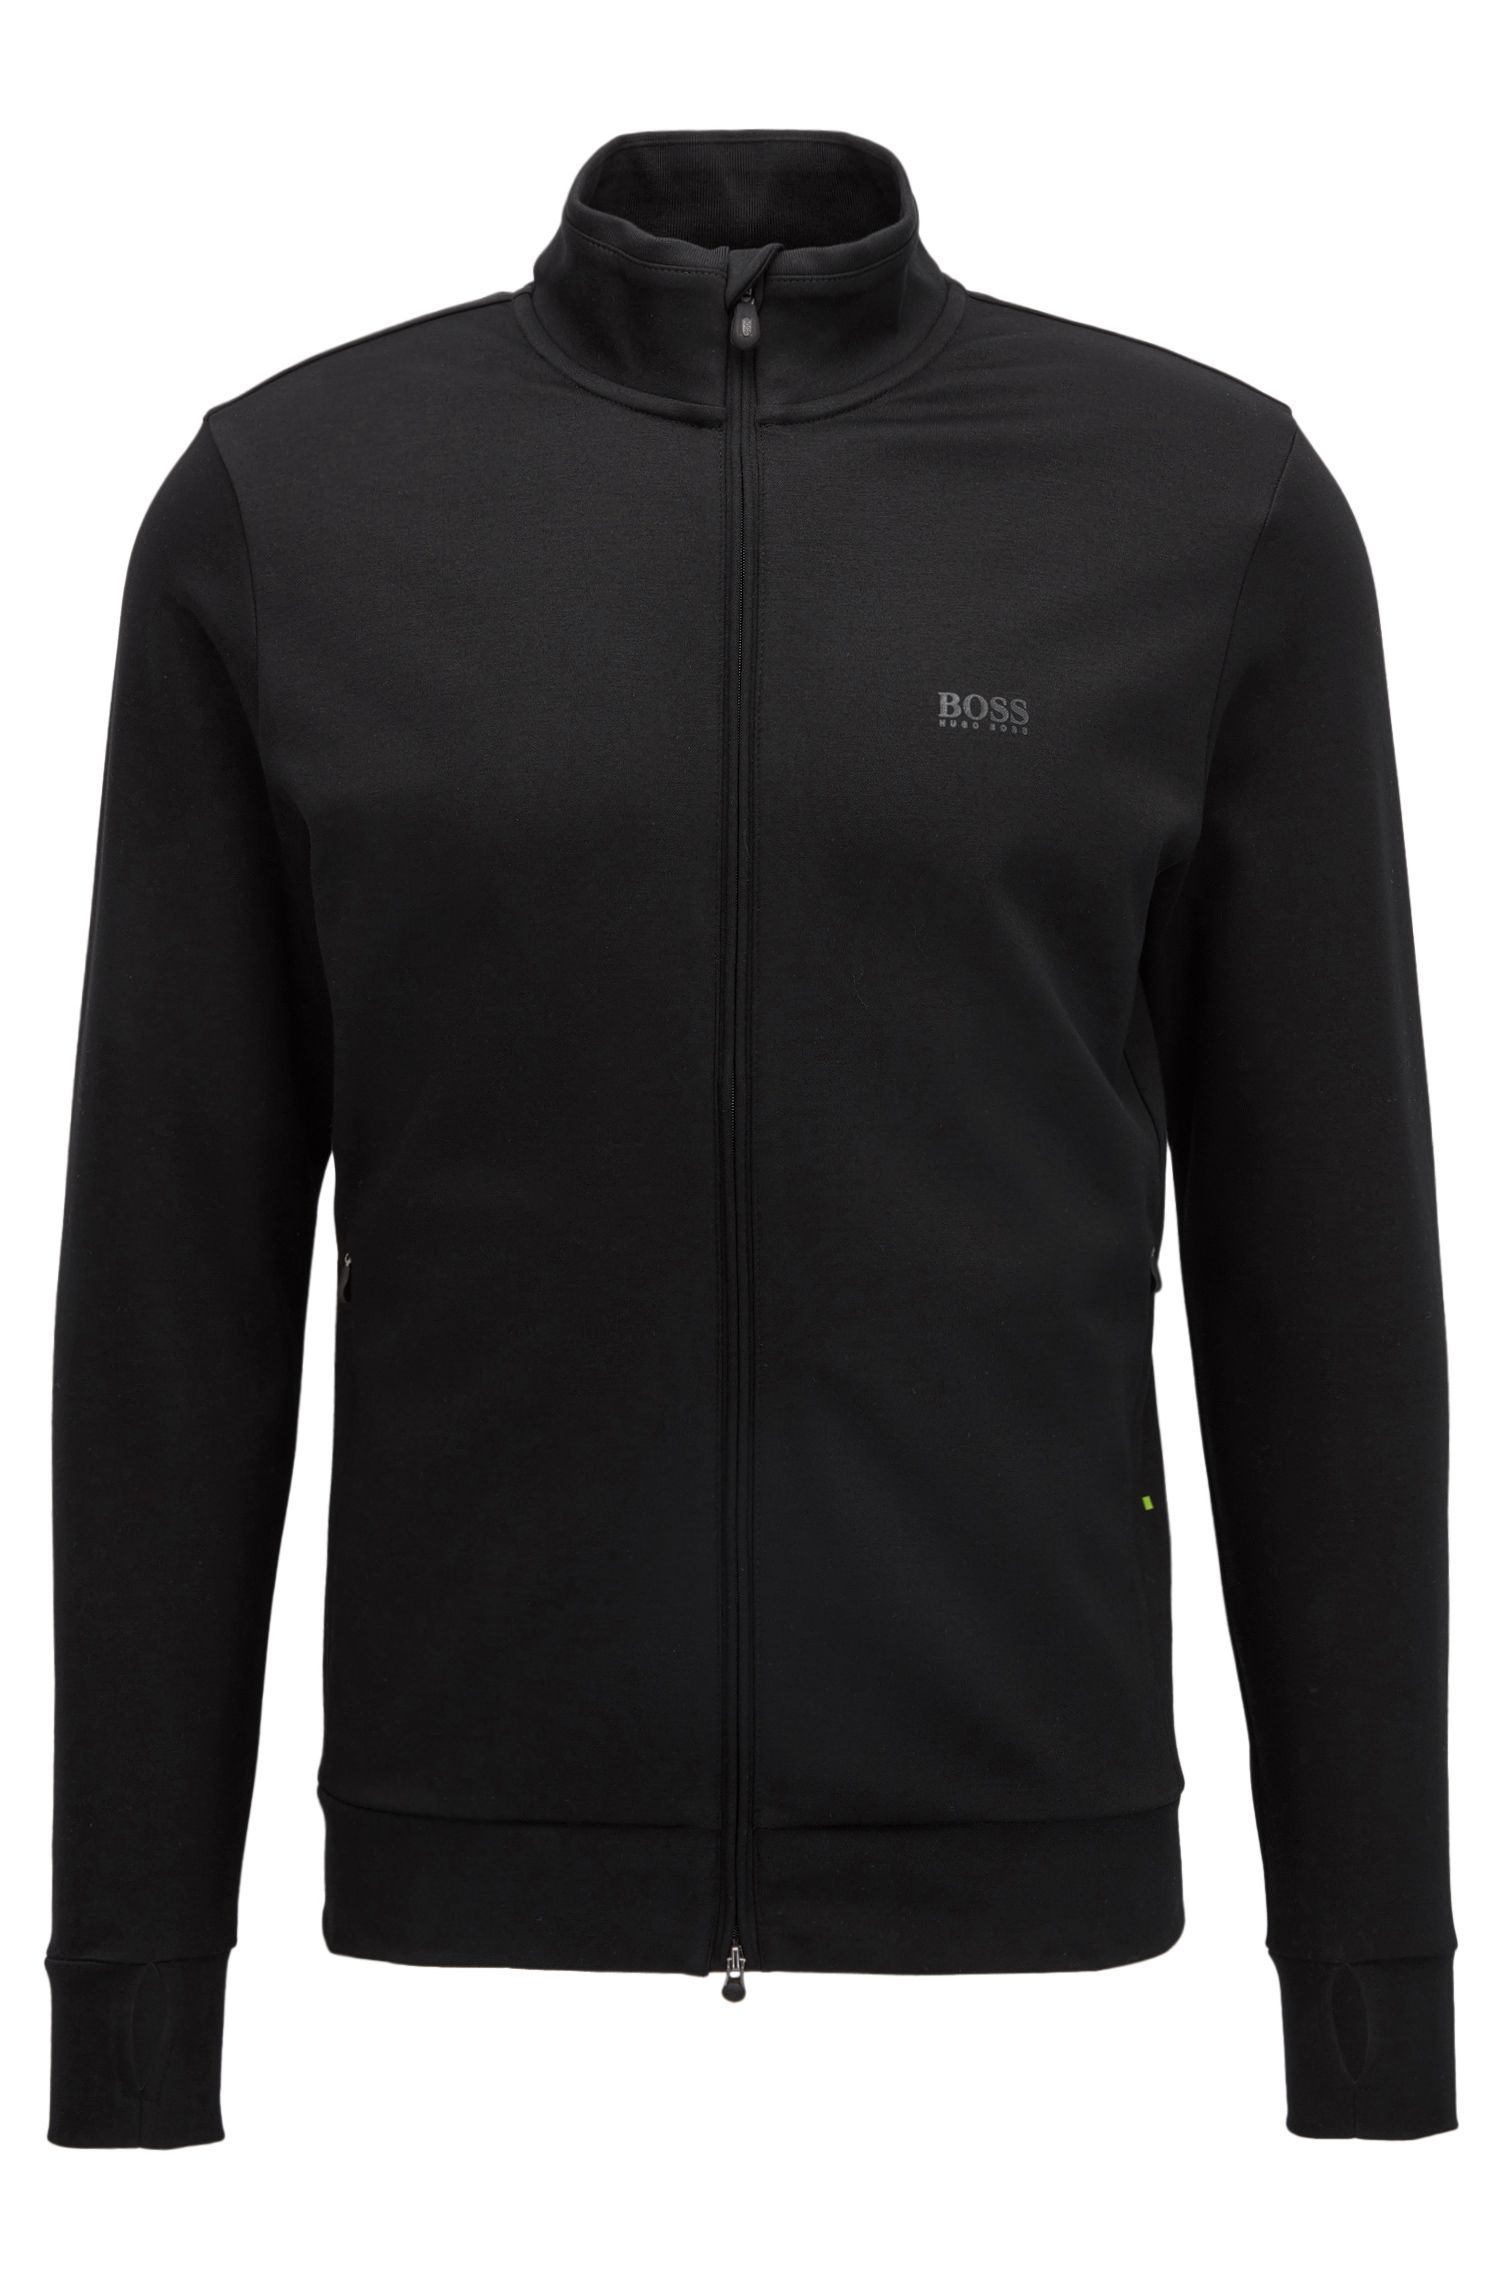 Storm-proof zip-through cotton-blend jacket in a slim fit